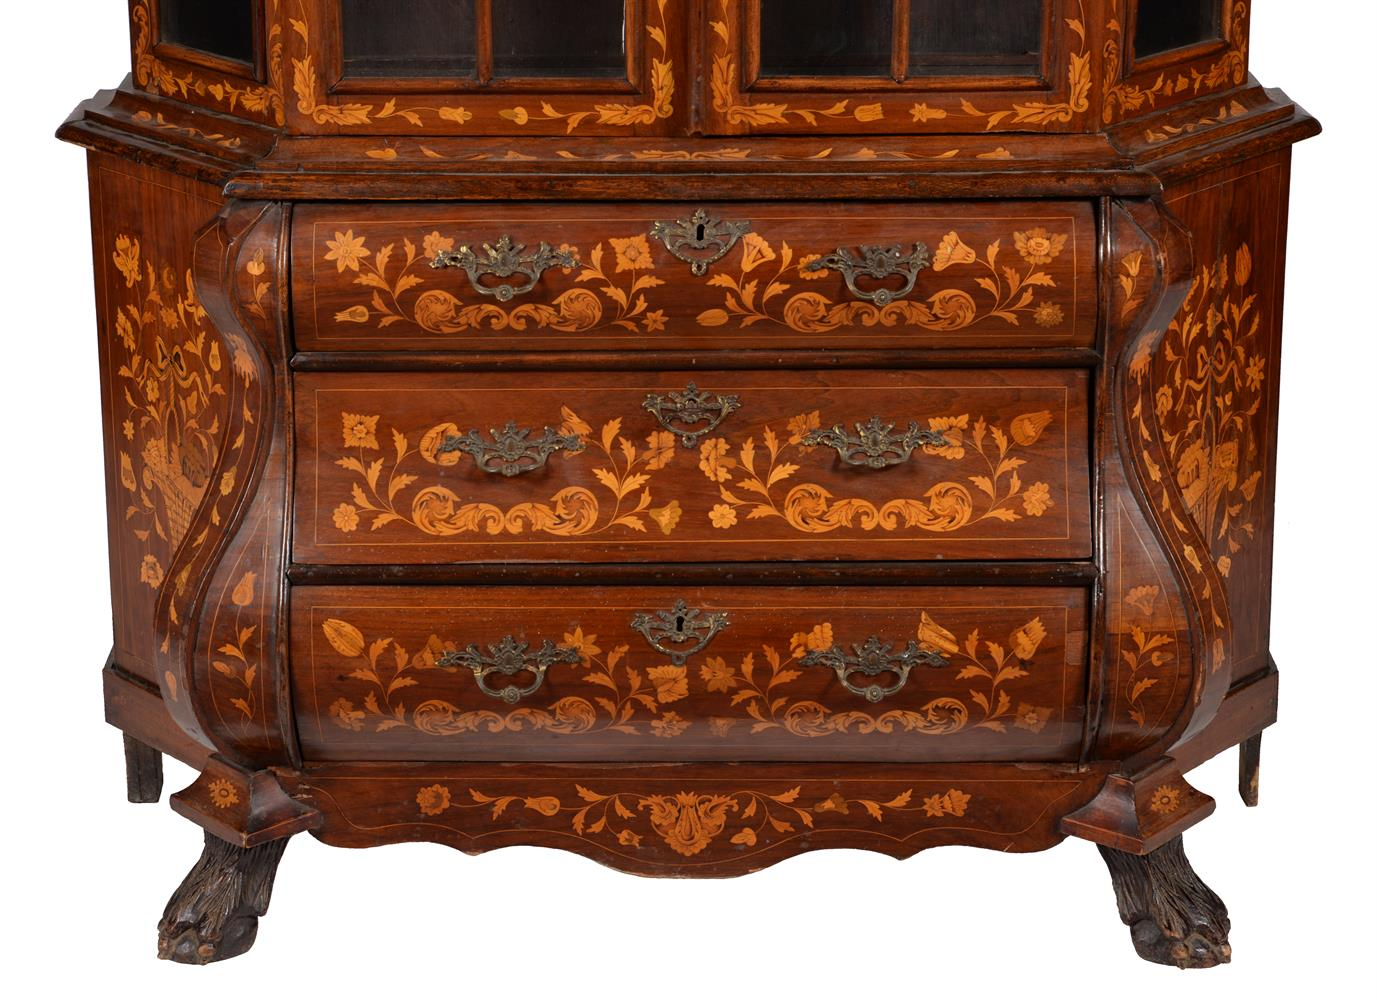 A DUTCH WALNUT AND MARQUETRY INLAID CABINET ON CHEST, LATE 18TH CENTURY - Image 3 of 4